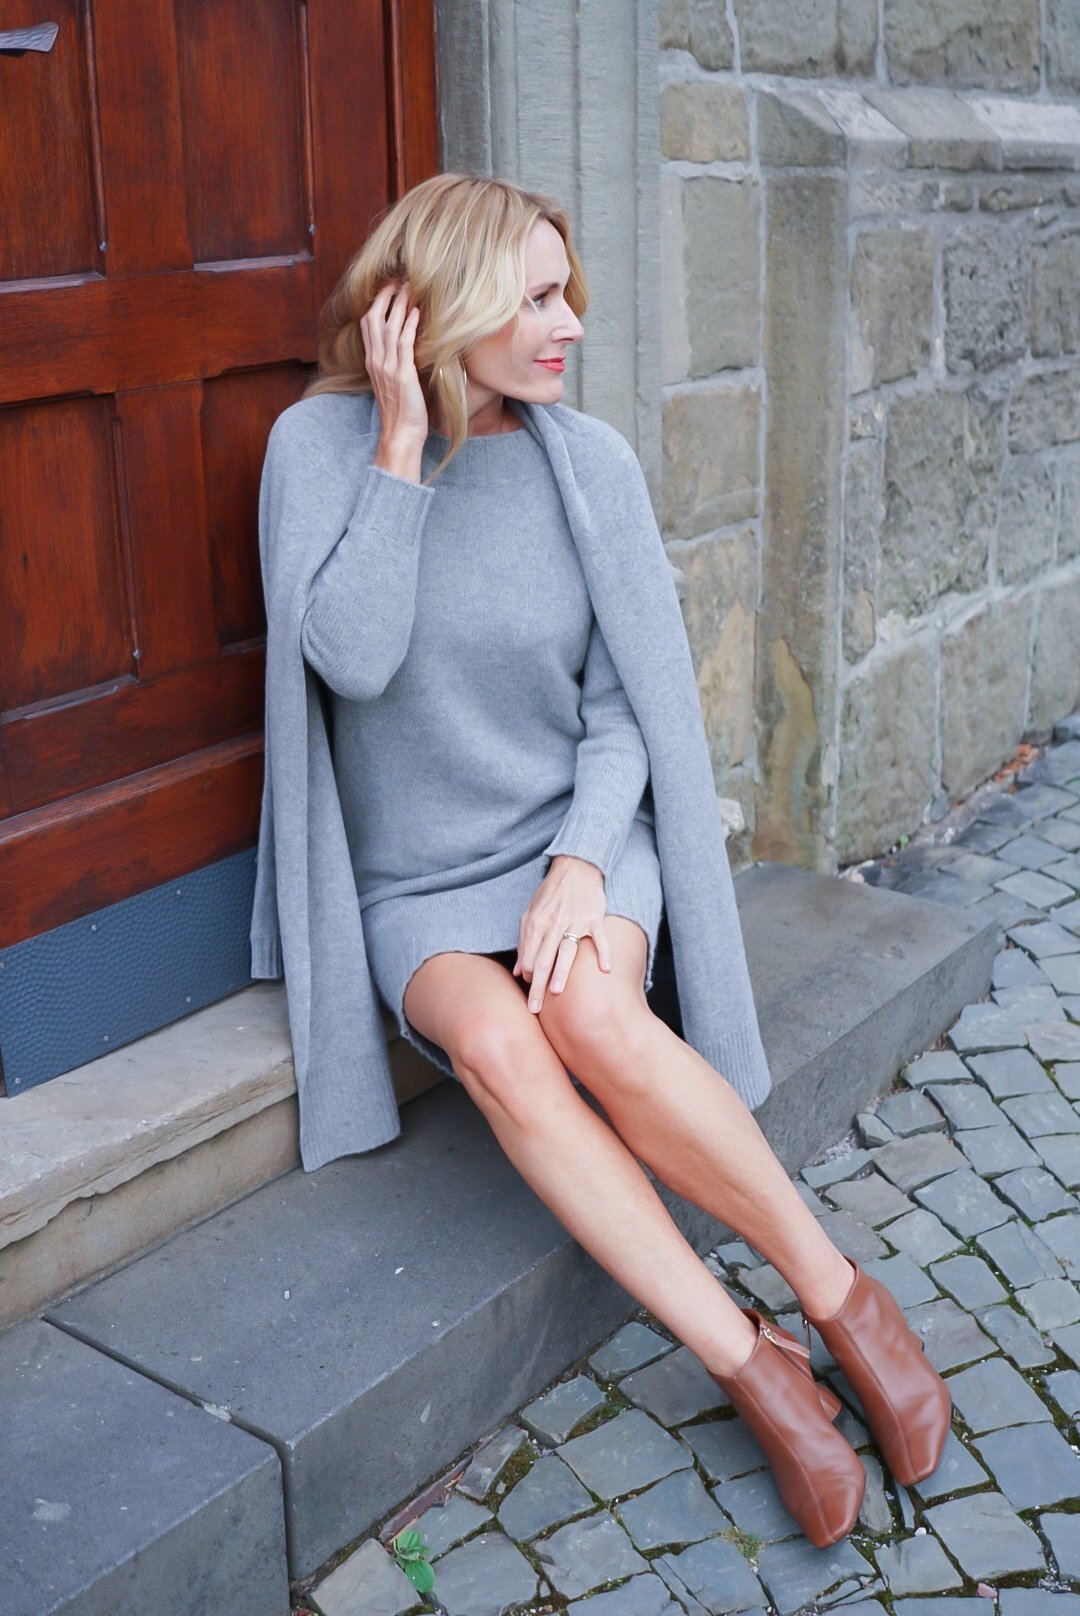 Ü40-Mode-Blog-Strickkleid-Include-Grau-Strickjacke-Include-Grau